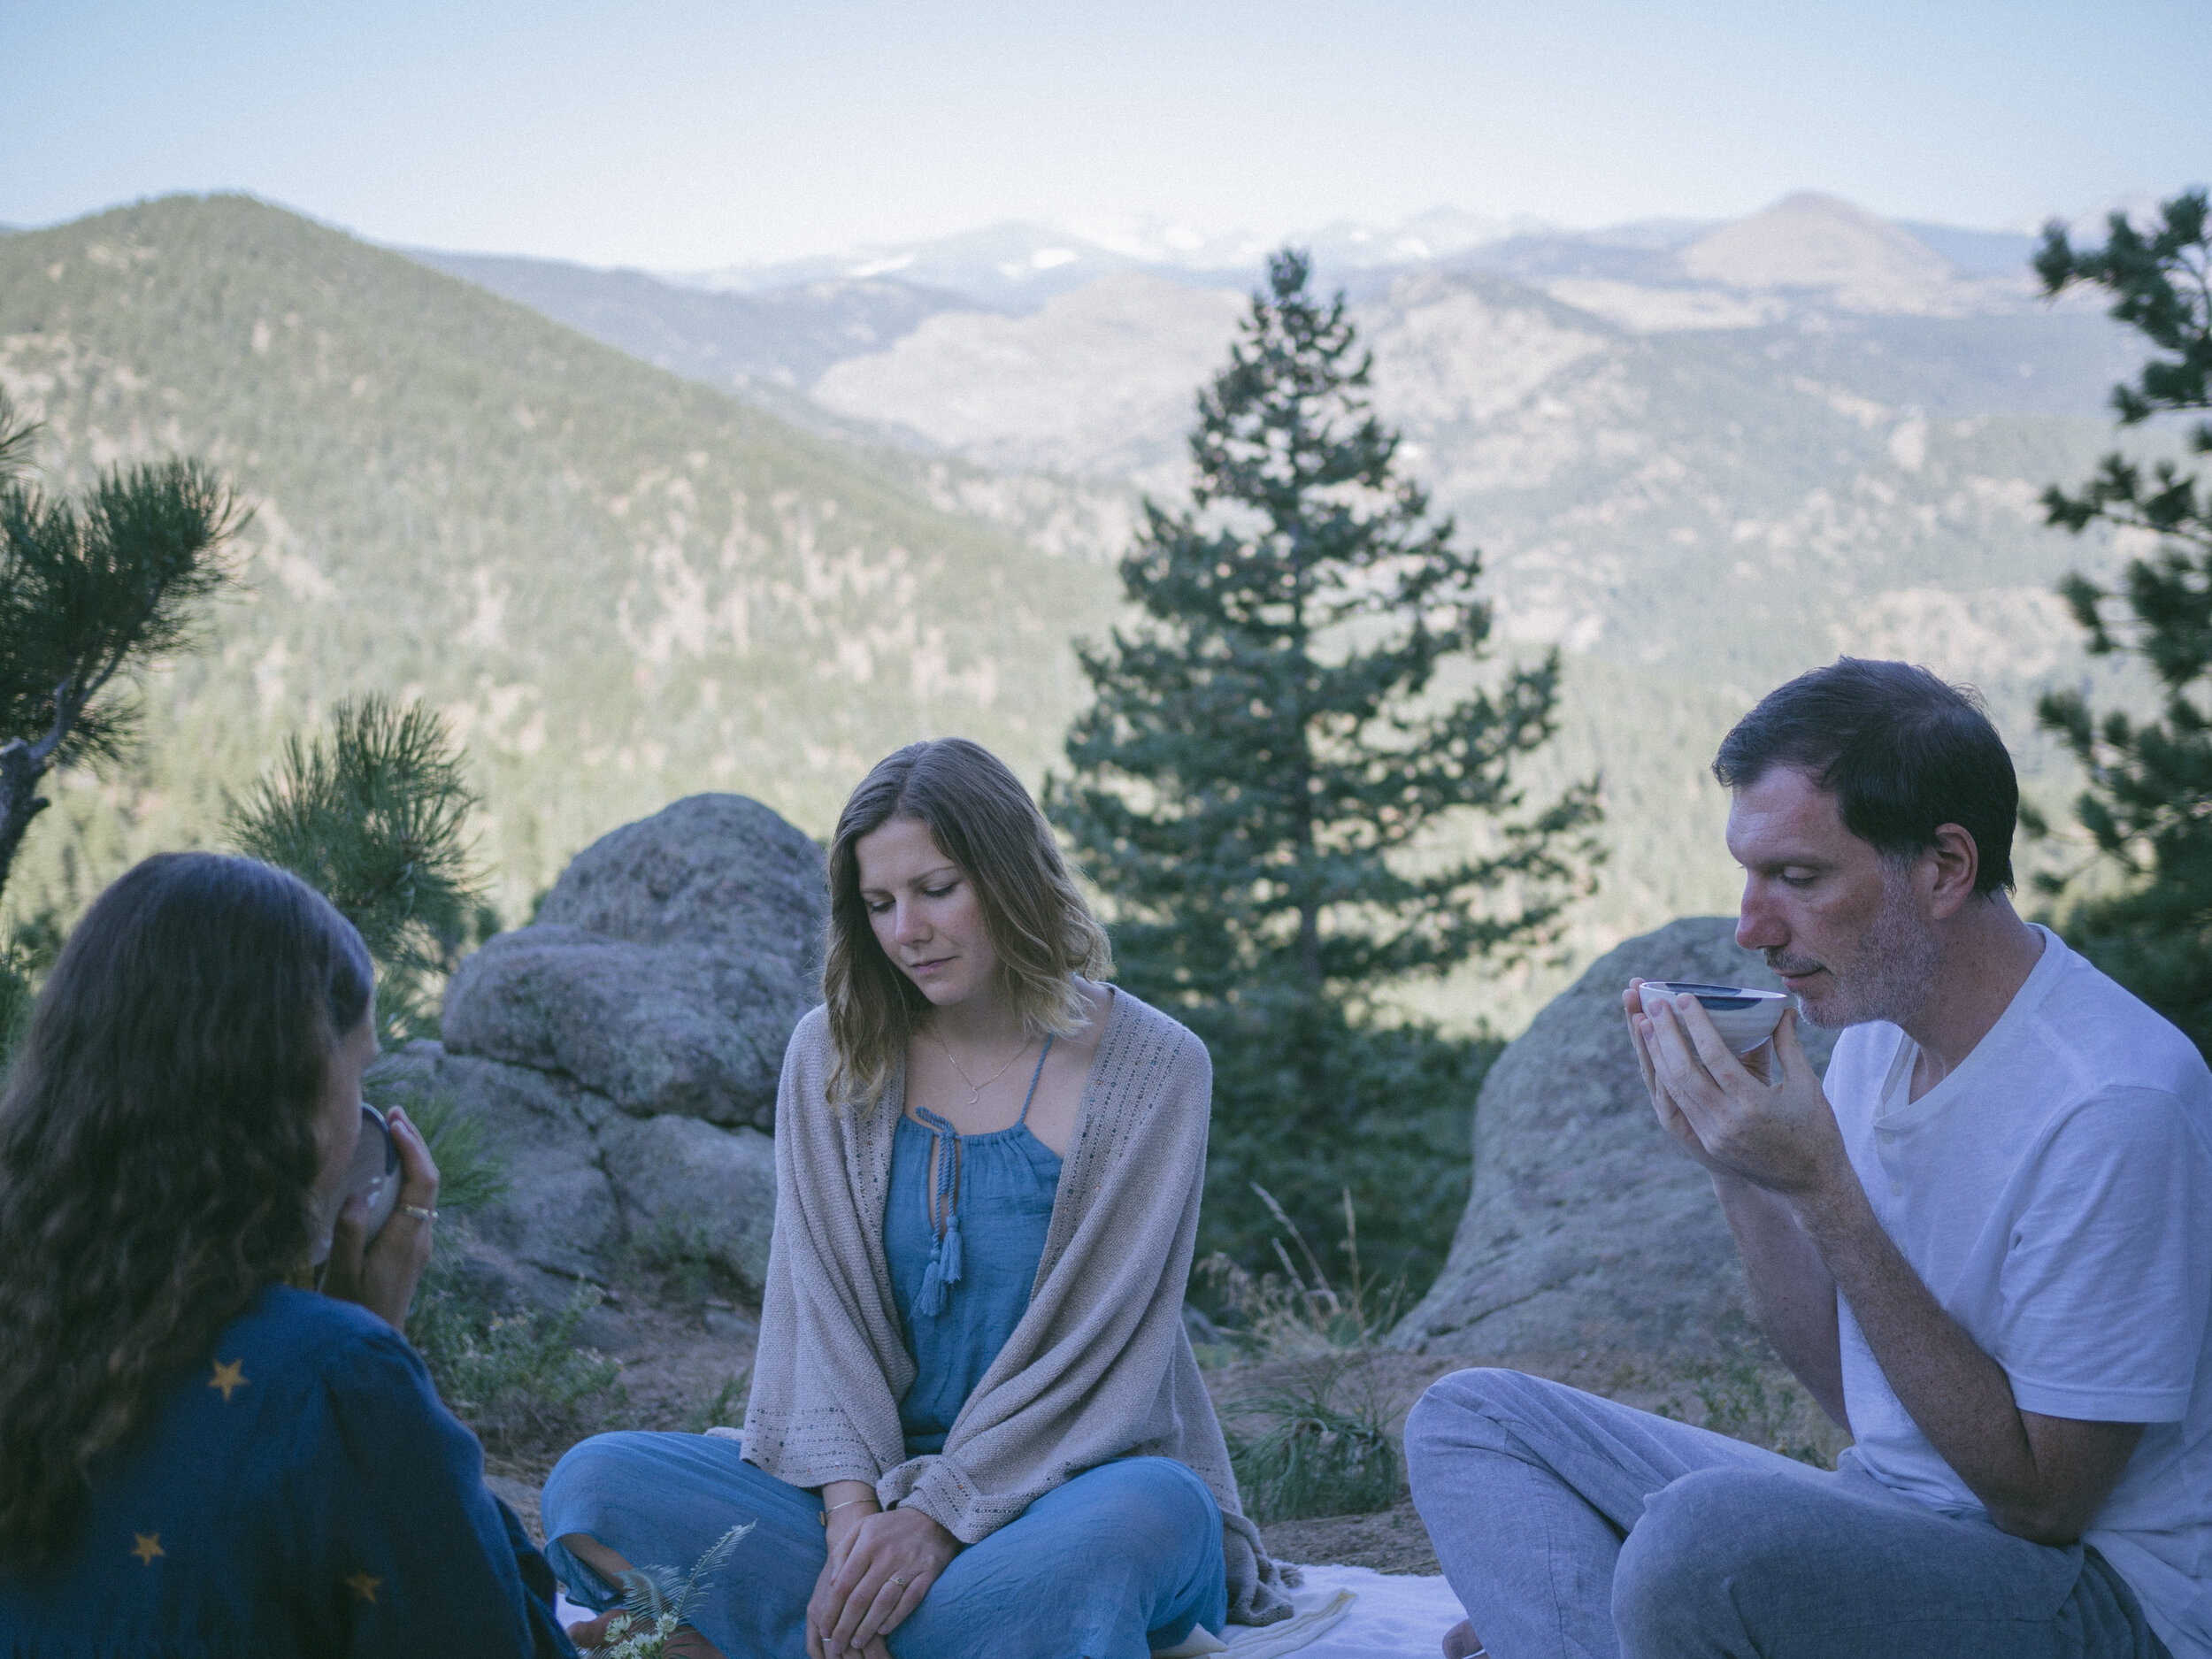 Saturday Mornings - Boulder, Colorado8:00-10:30amJoin me as we hike into a remote location to enjoy beautiful bowls of tea!